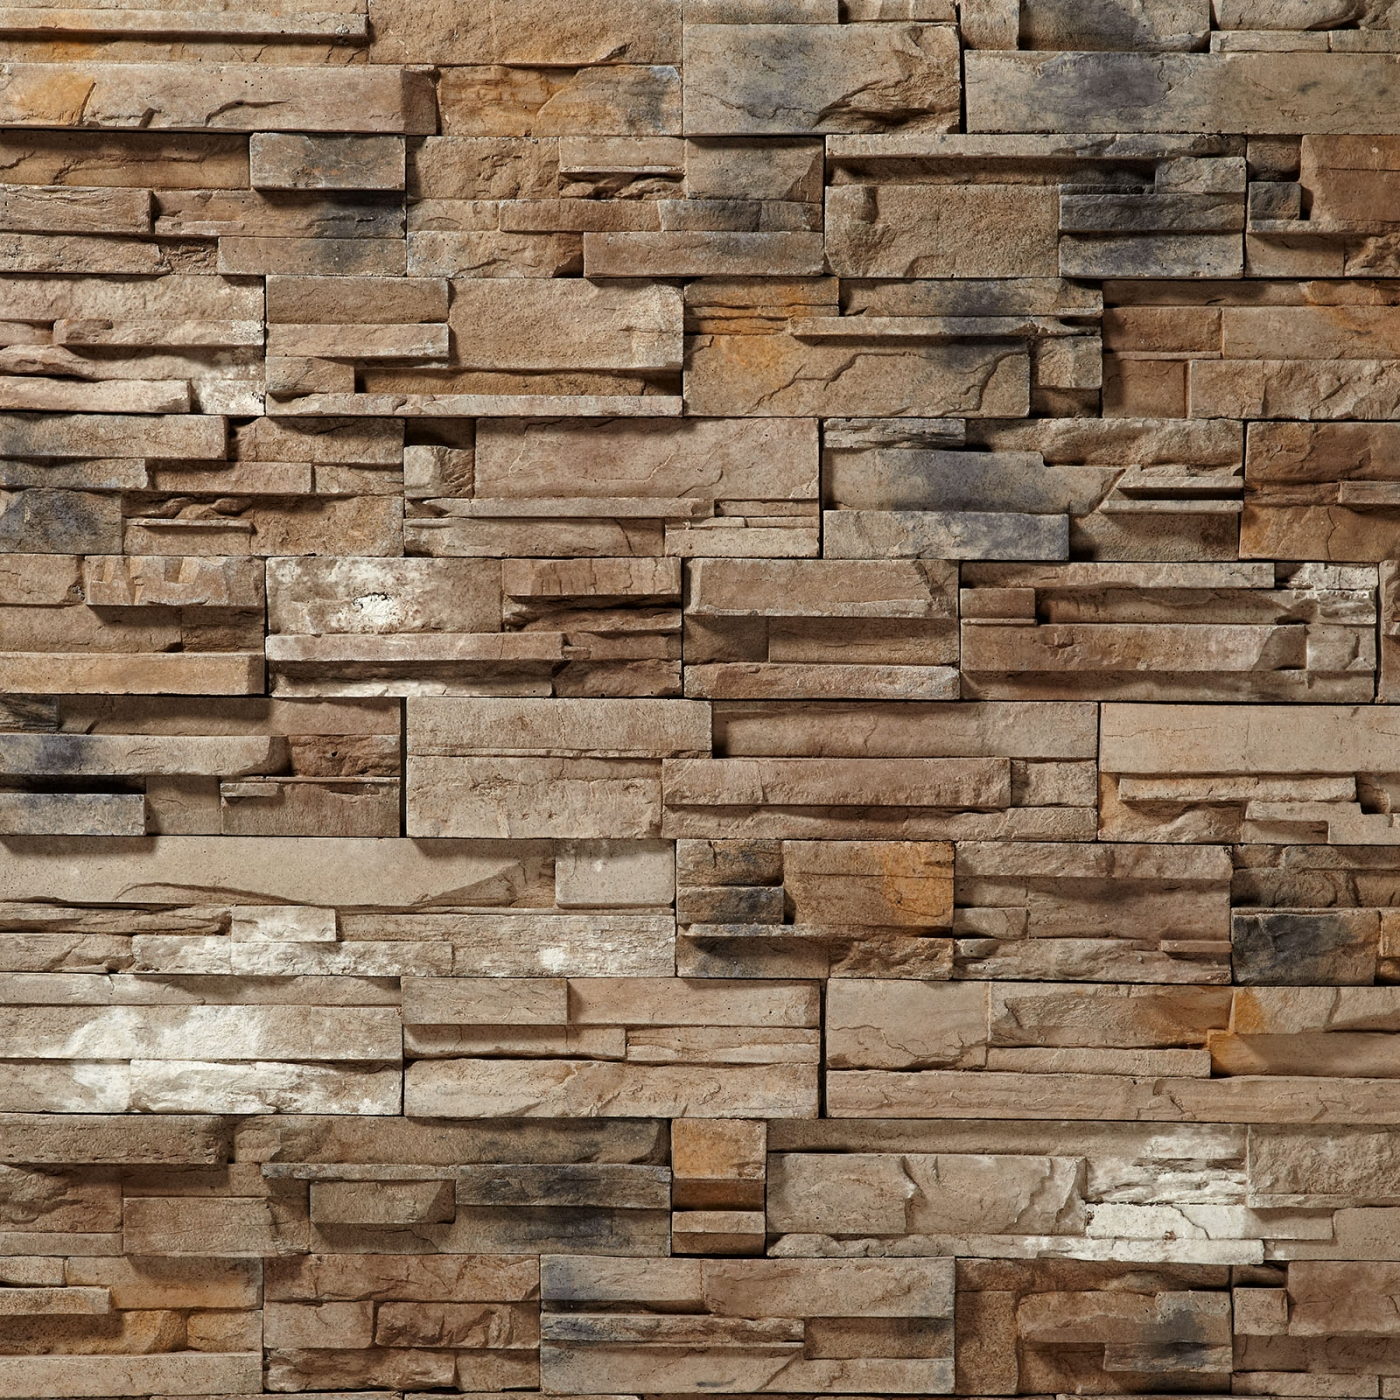 New England ProStack Lite Stone Veneer from Environmental StoneWorks